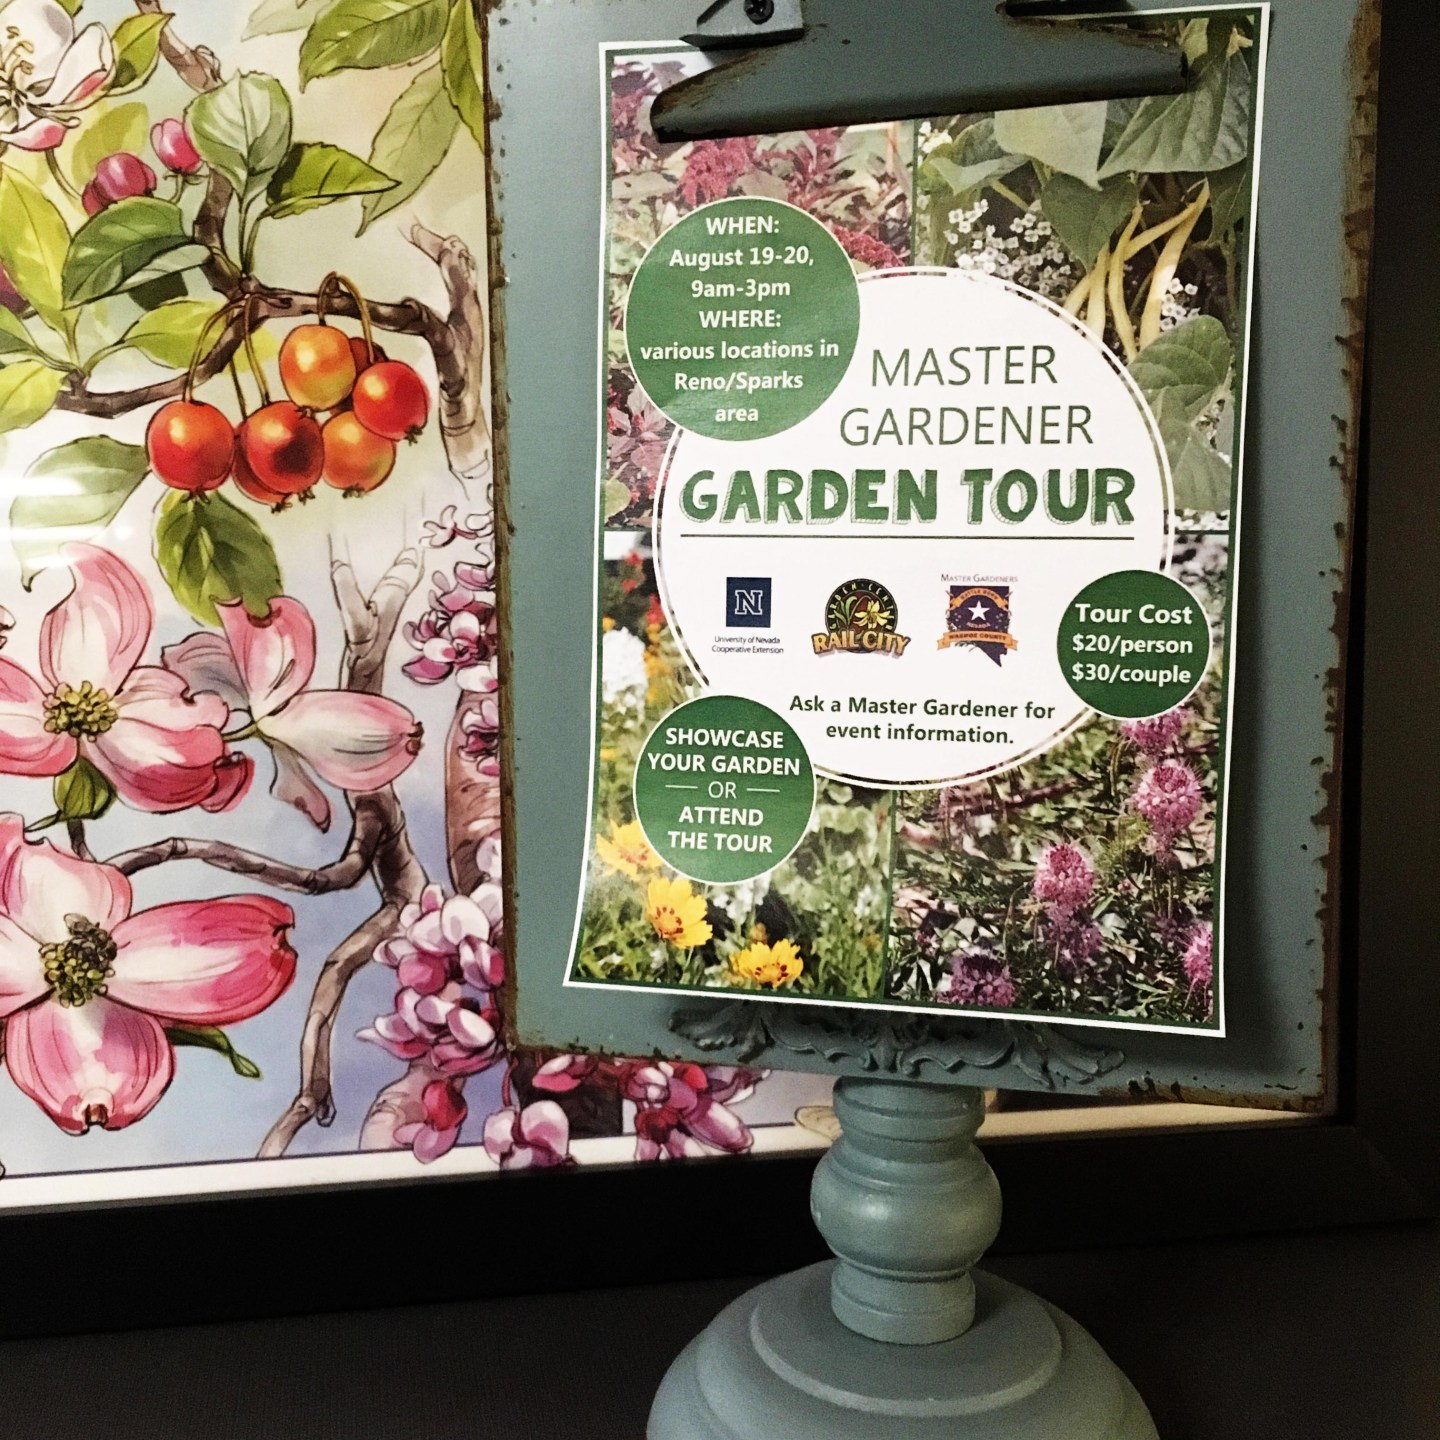 How Does a Master Gardener's Garden Grow?